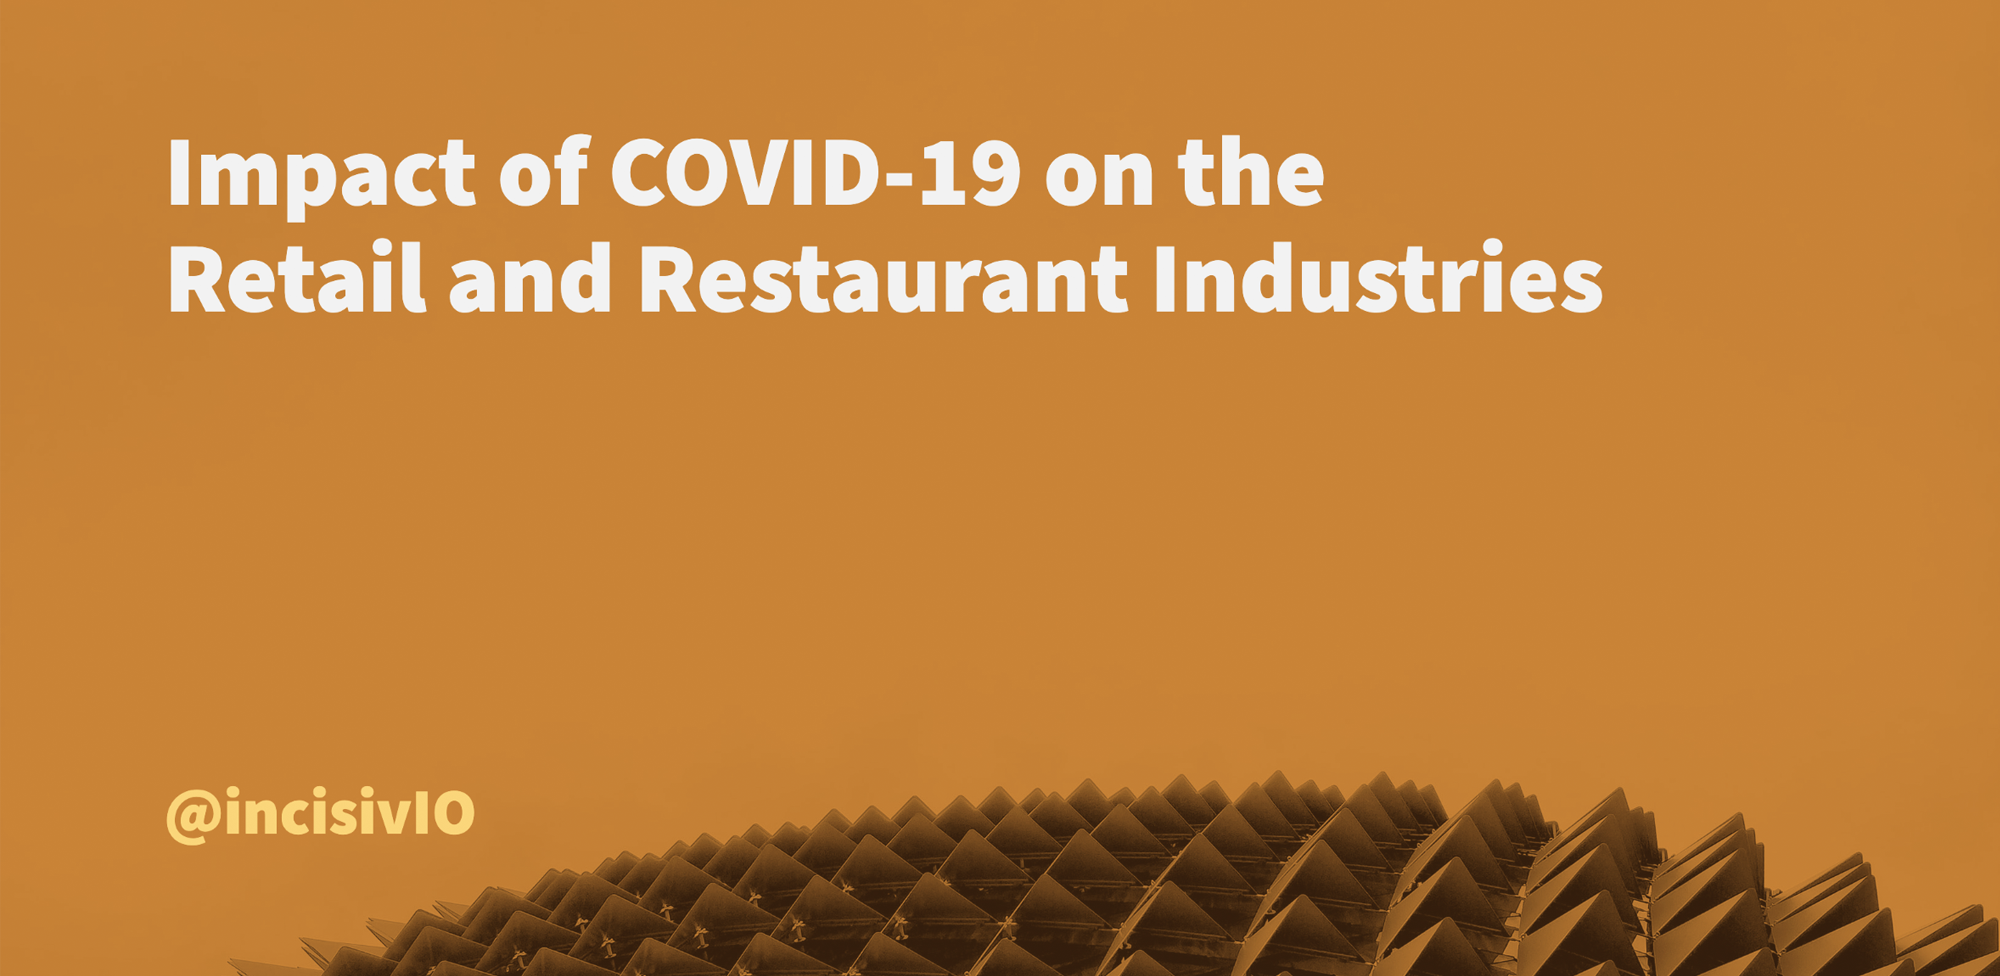 Impact of COVID-19 on the Retail and Restaurant Industries